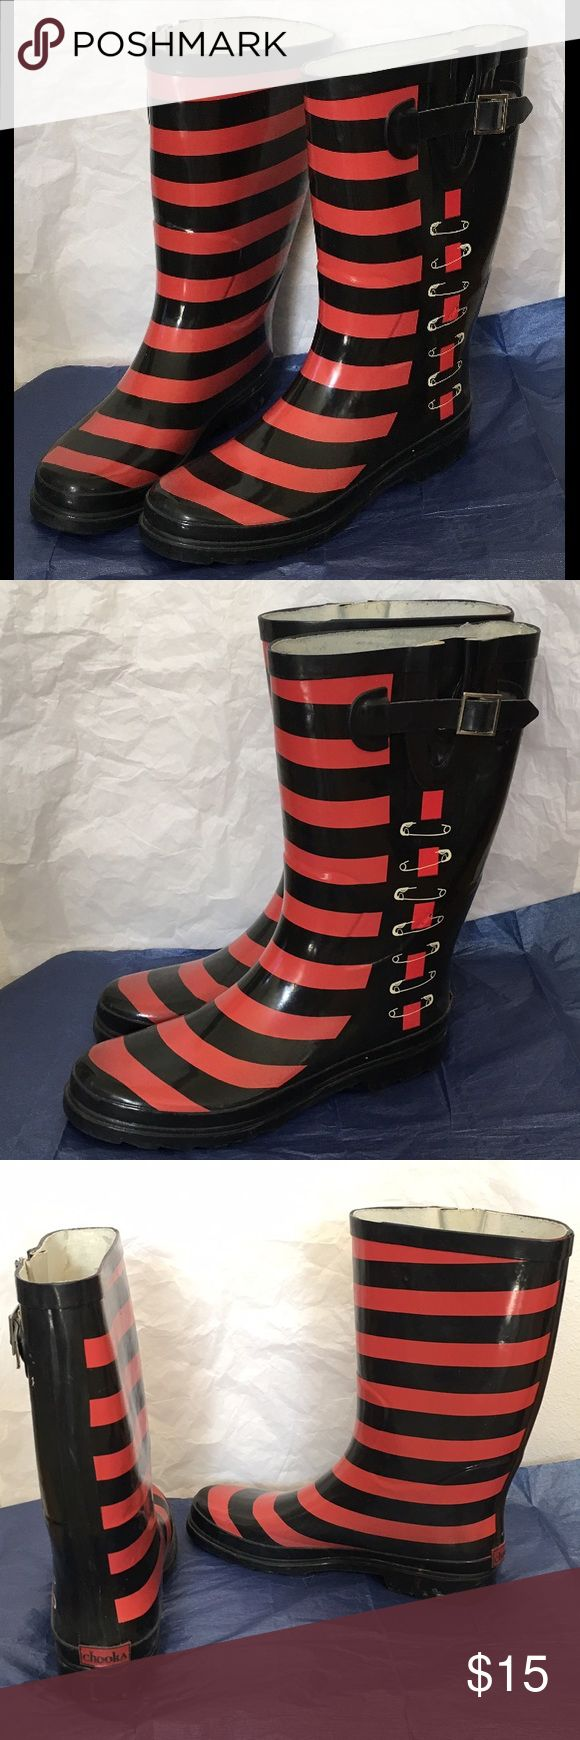 """Funky Safety Pin Striped Rain Boots Unique and well-worn pair of Chooka rain boots featuring a safety pin design on the outer calf and red on black stripes across the front and inner calf. Buckle closure with extension at the top to tuck in thicker pants. Without extension the top calf circumference is about 16"""". Flaws include several small puncture marks near the safety pins, minor discoloration inside the boot, needs inserts, and there is some dirt on the soles. Chooka Shoes Winter & Rain…"""